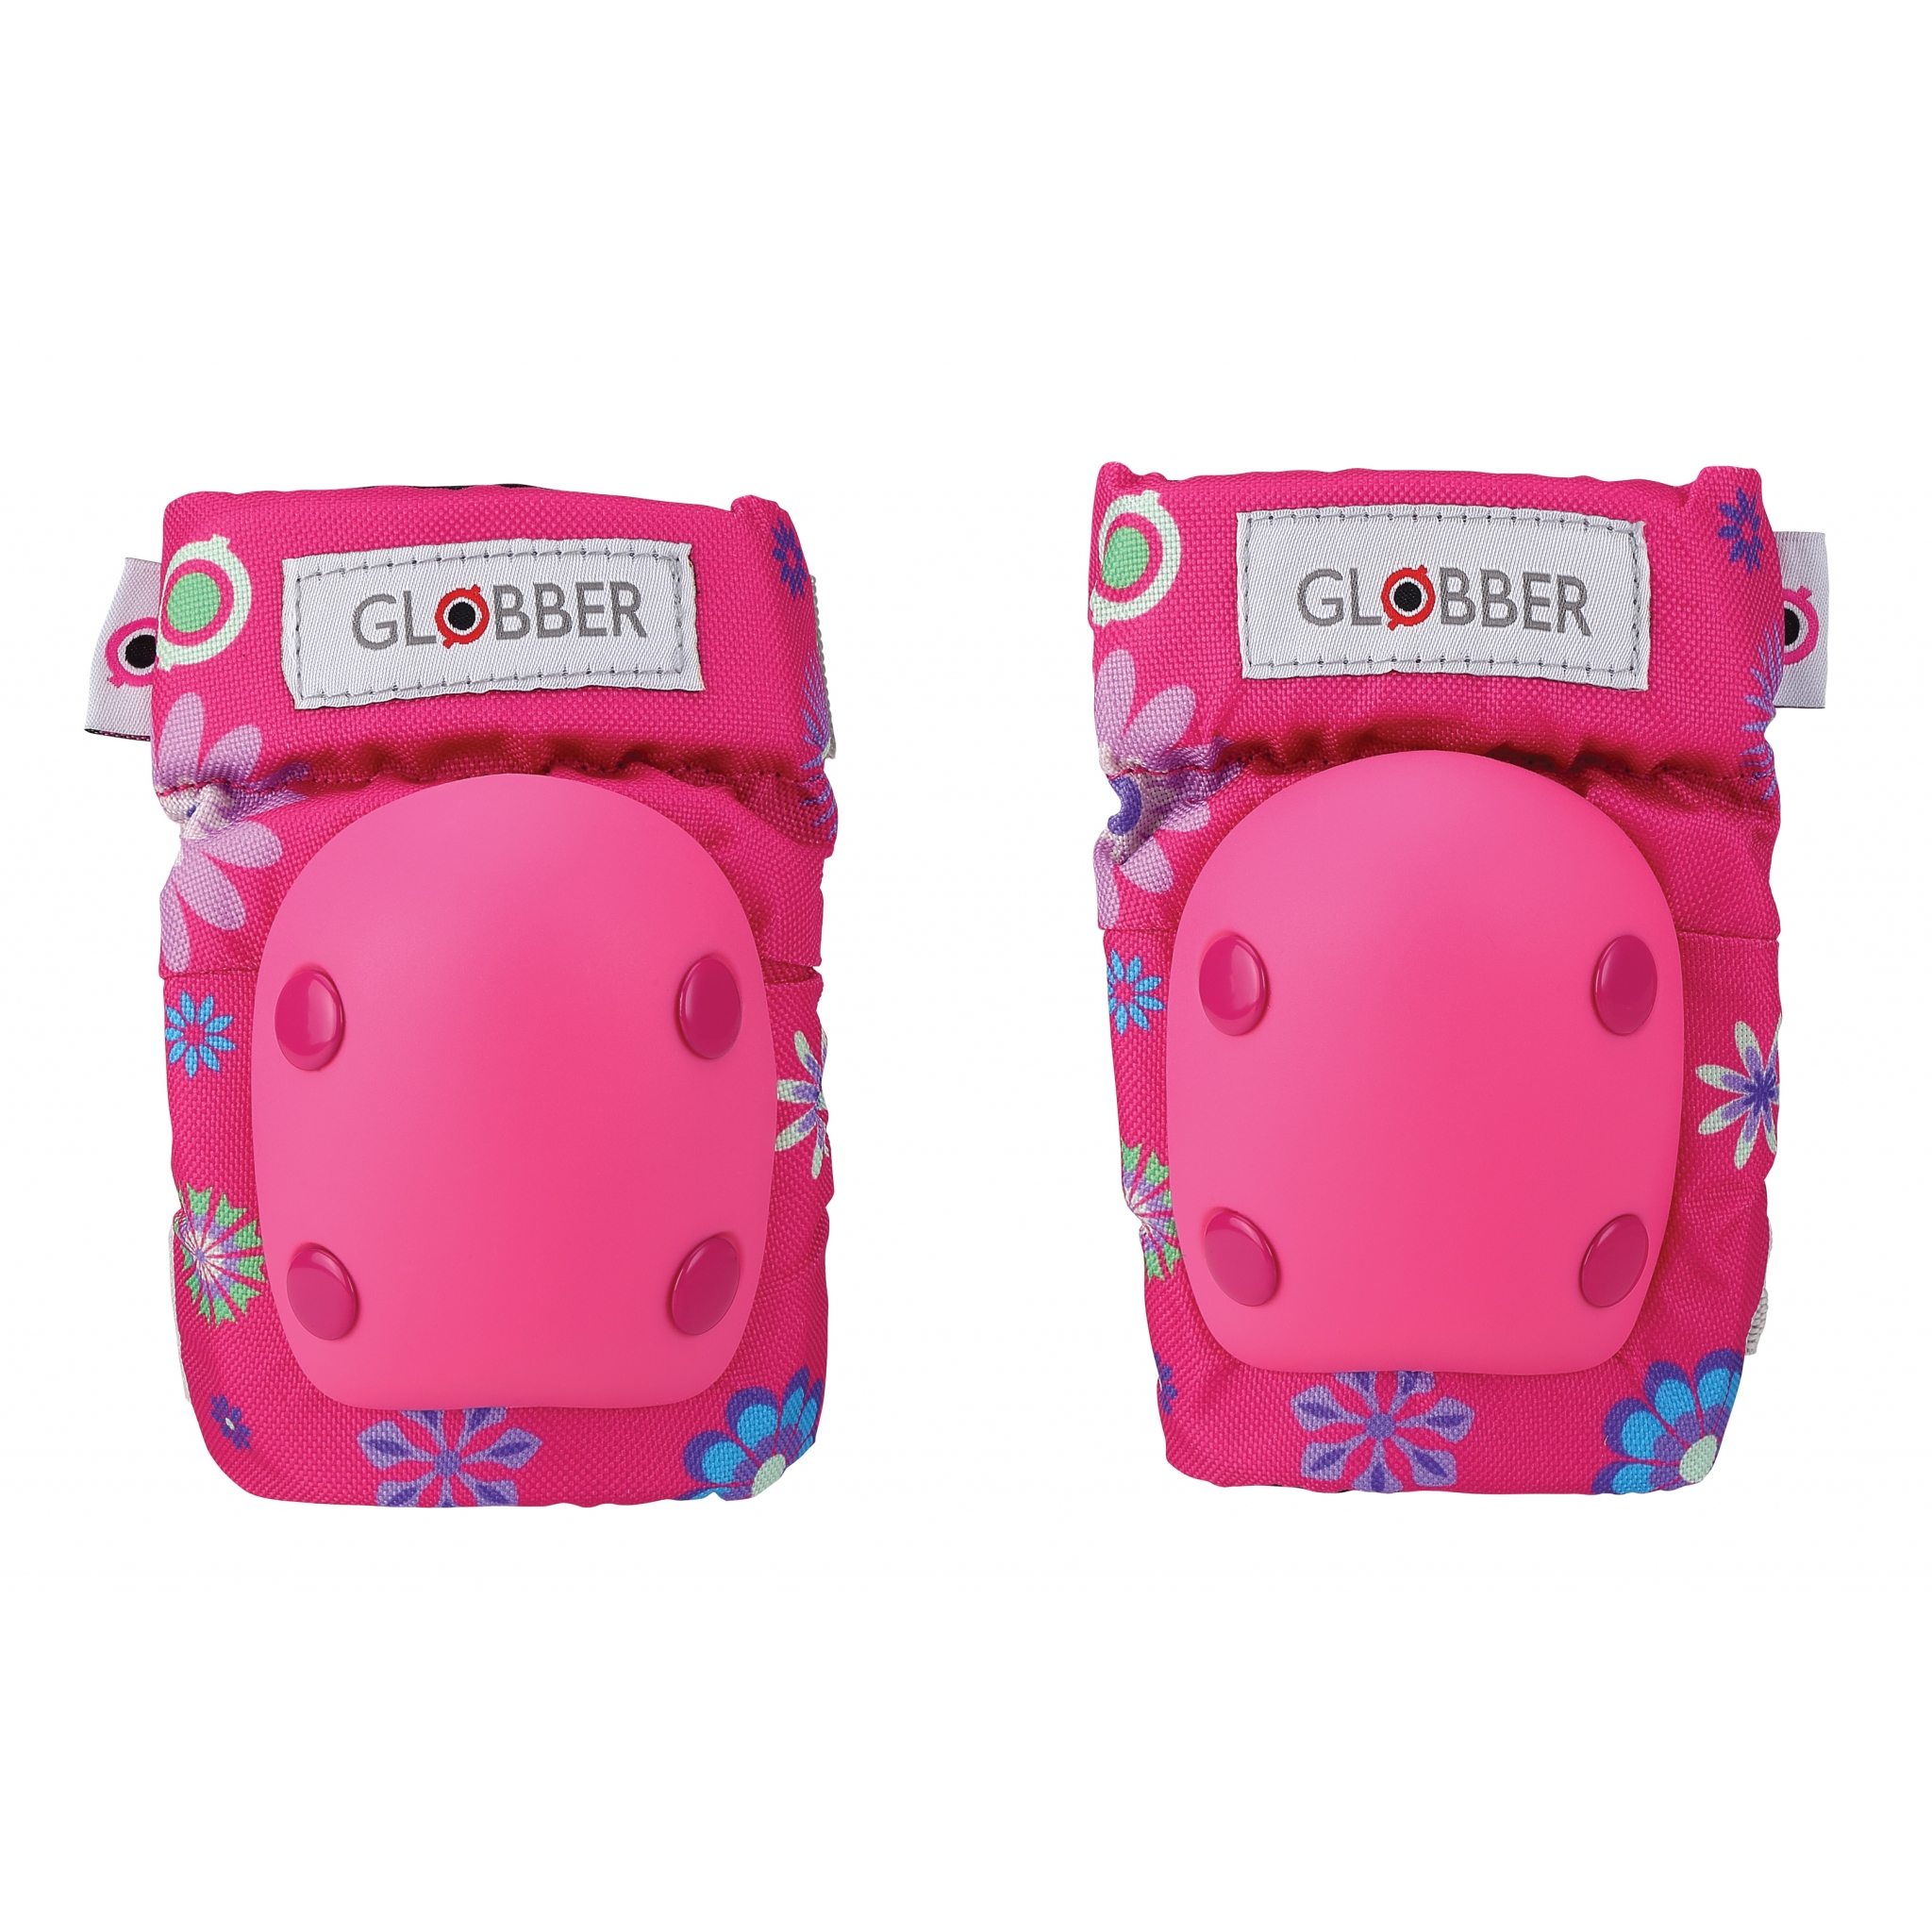 printed protective gear for kids - Globber 0